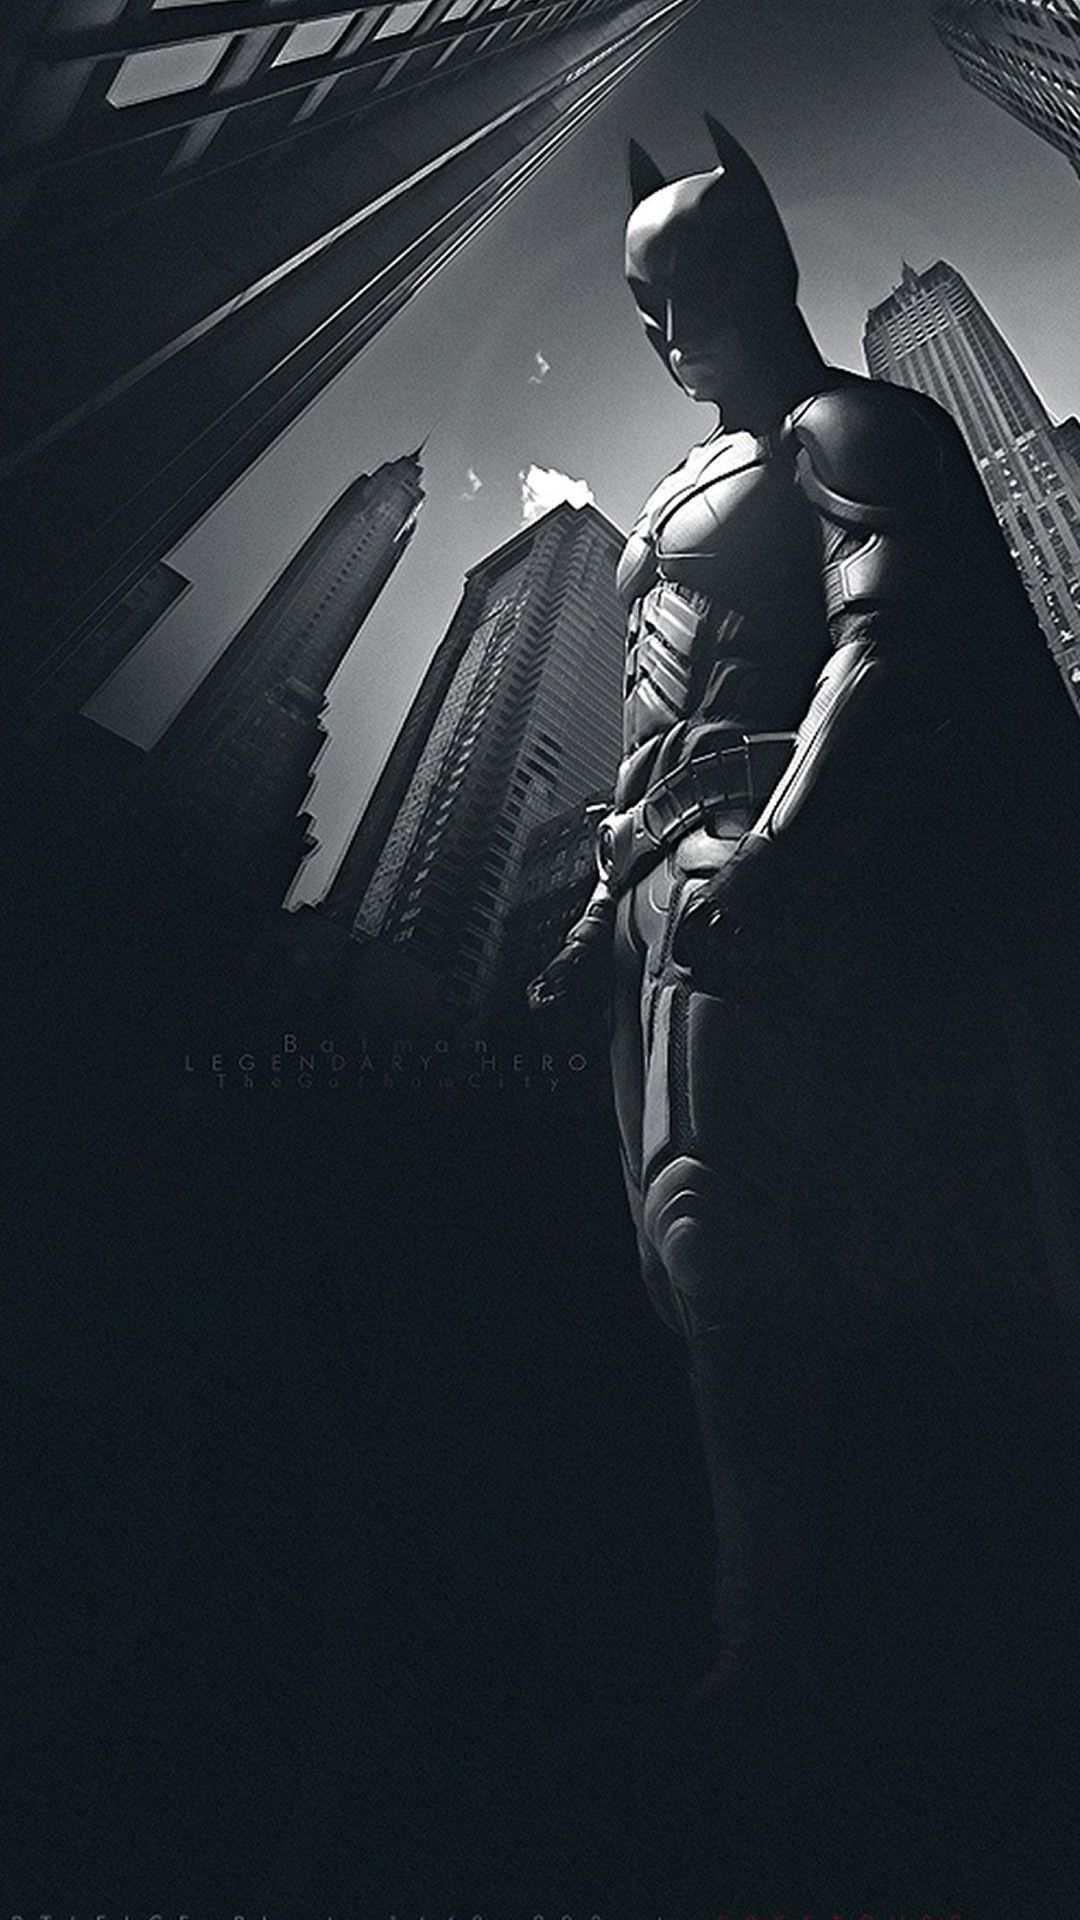 Pin By Bugis Shop On My Saves In 2020 Batman Wallpaper Iphone Batman Wallpaper Dark Knight Wallpaper